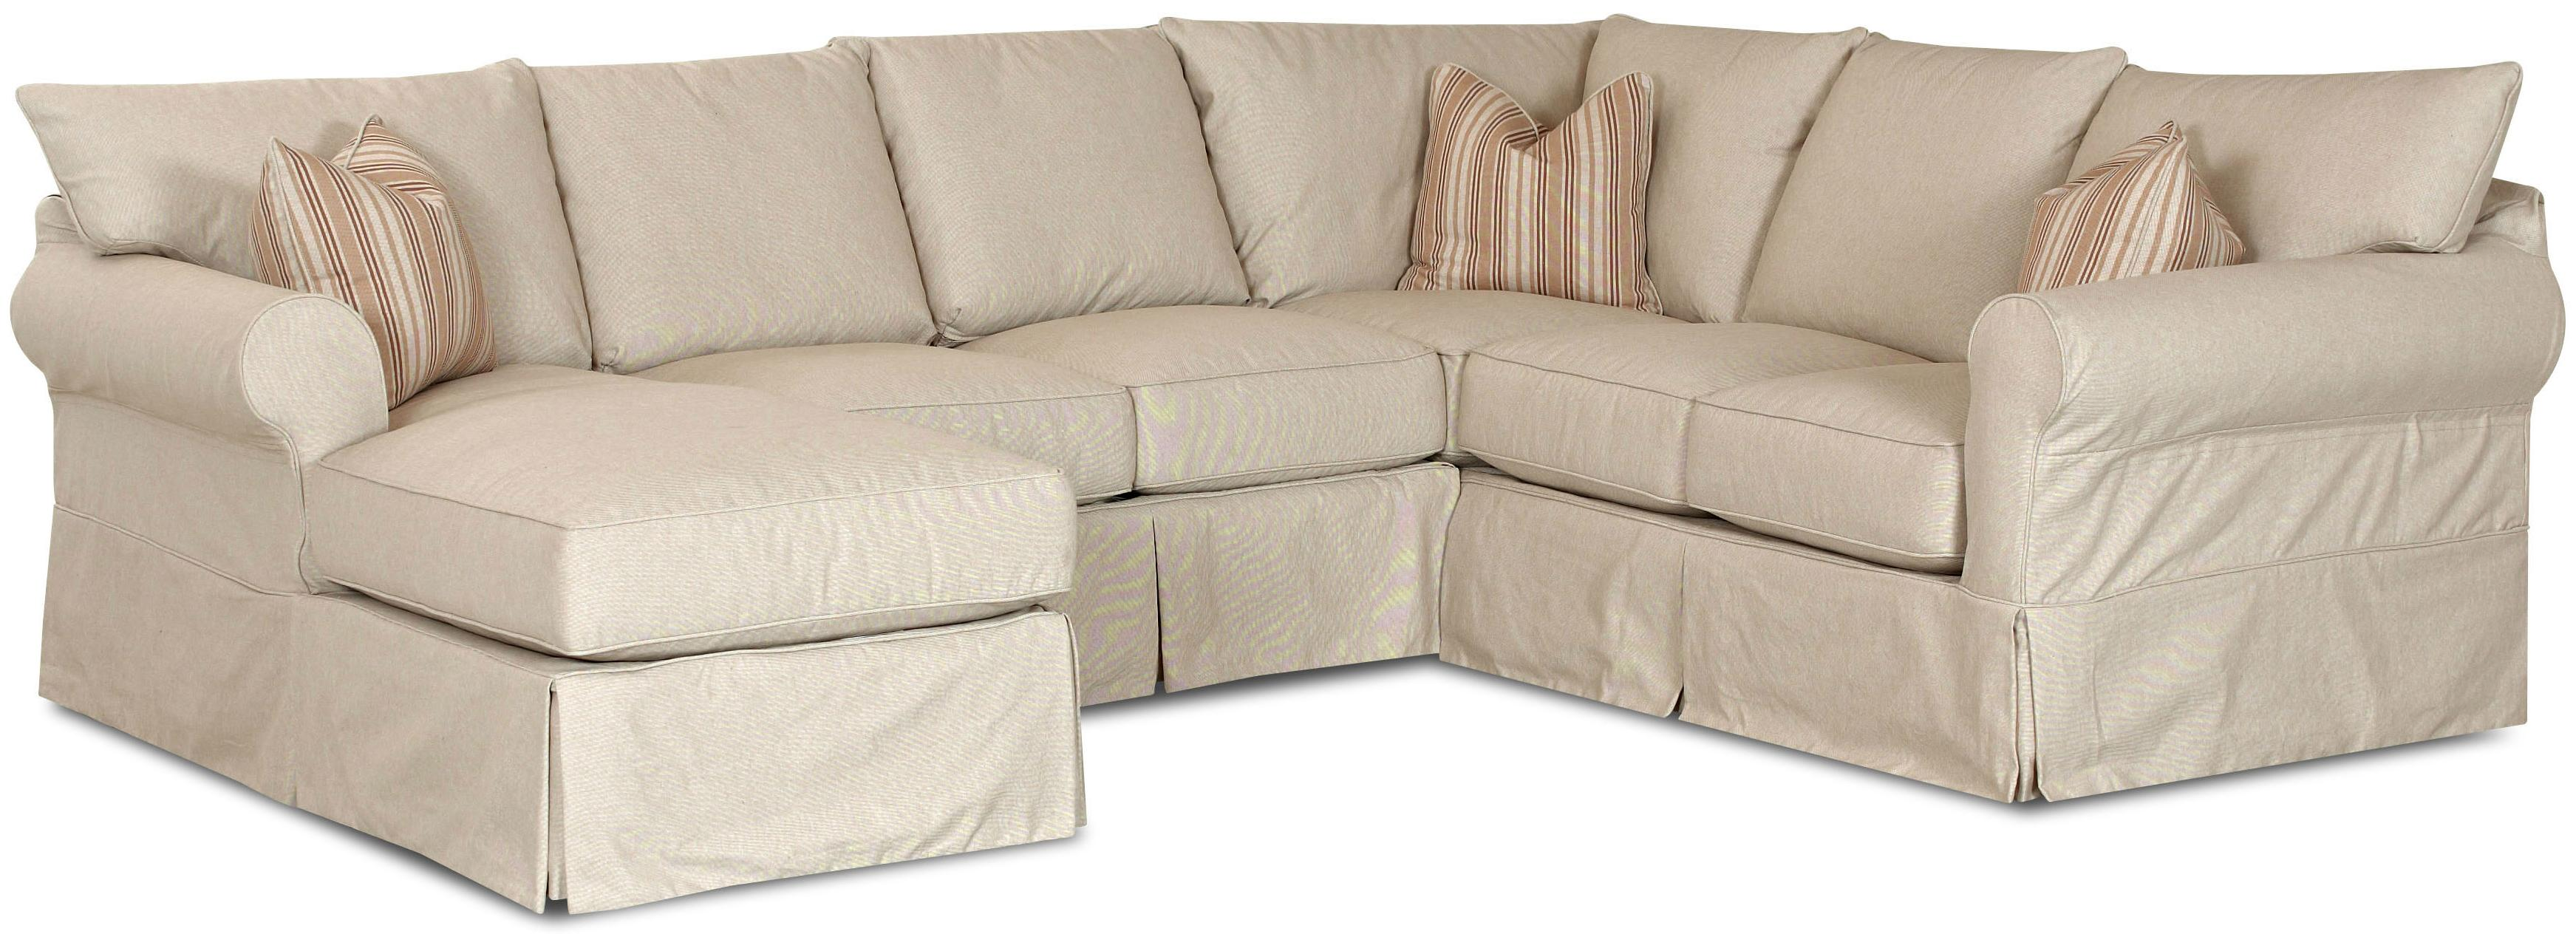 Slip Cover Sectional Sofa with Left Chaise  sc 1 st  Wolf Furniture : slipcovers for sectional couches - Sectionals, Sofas & Couches